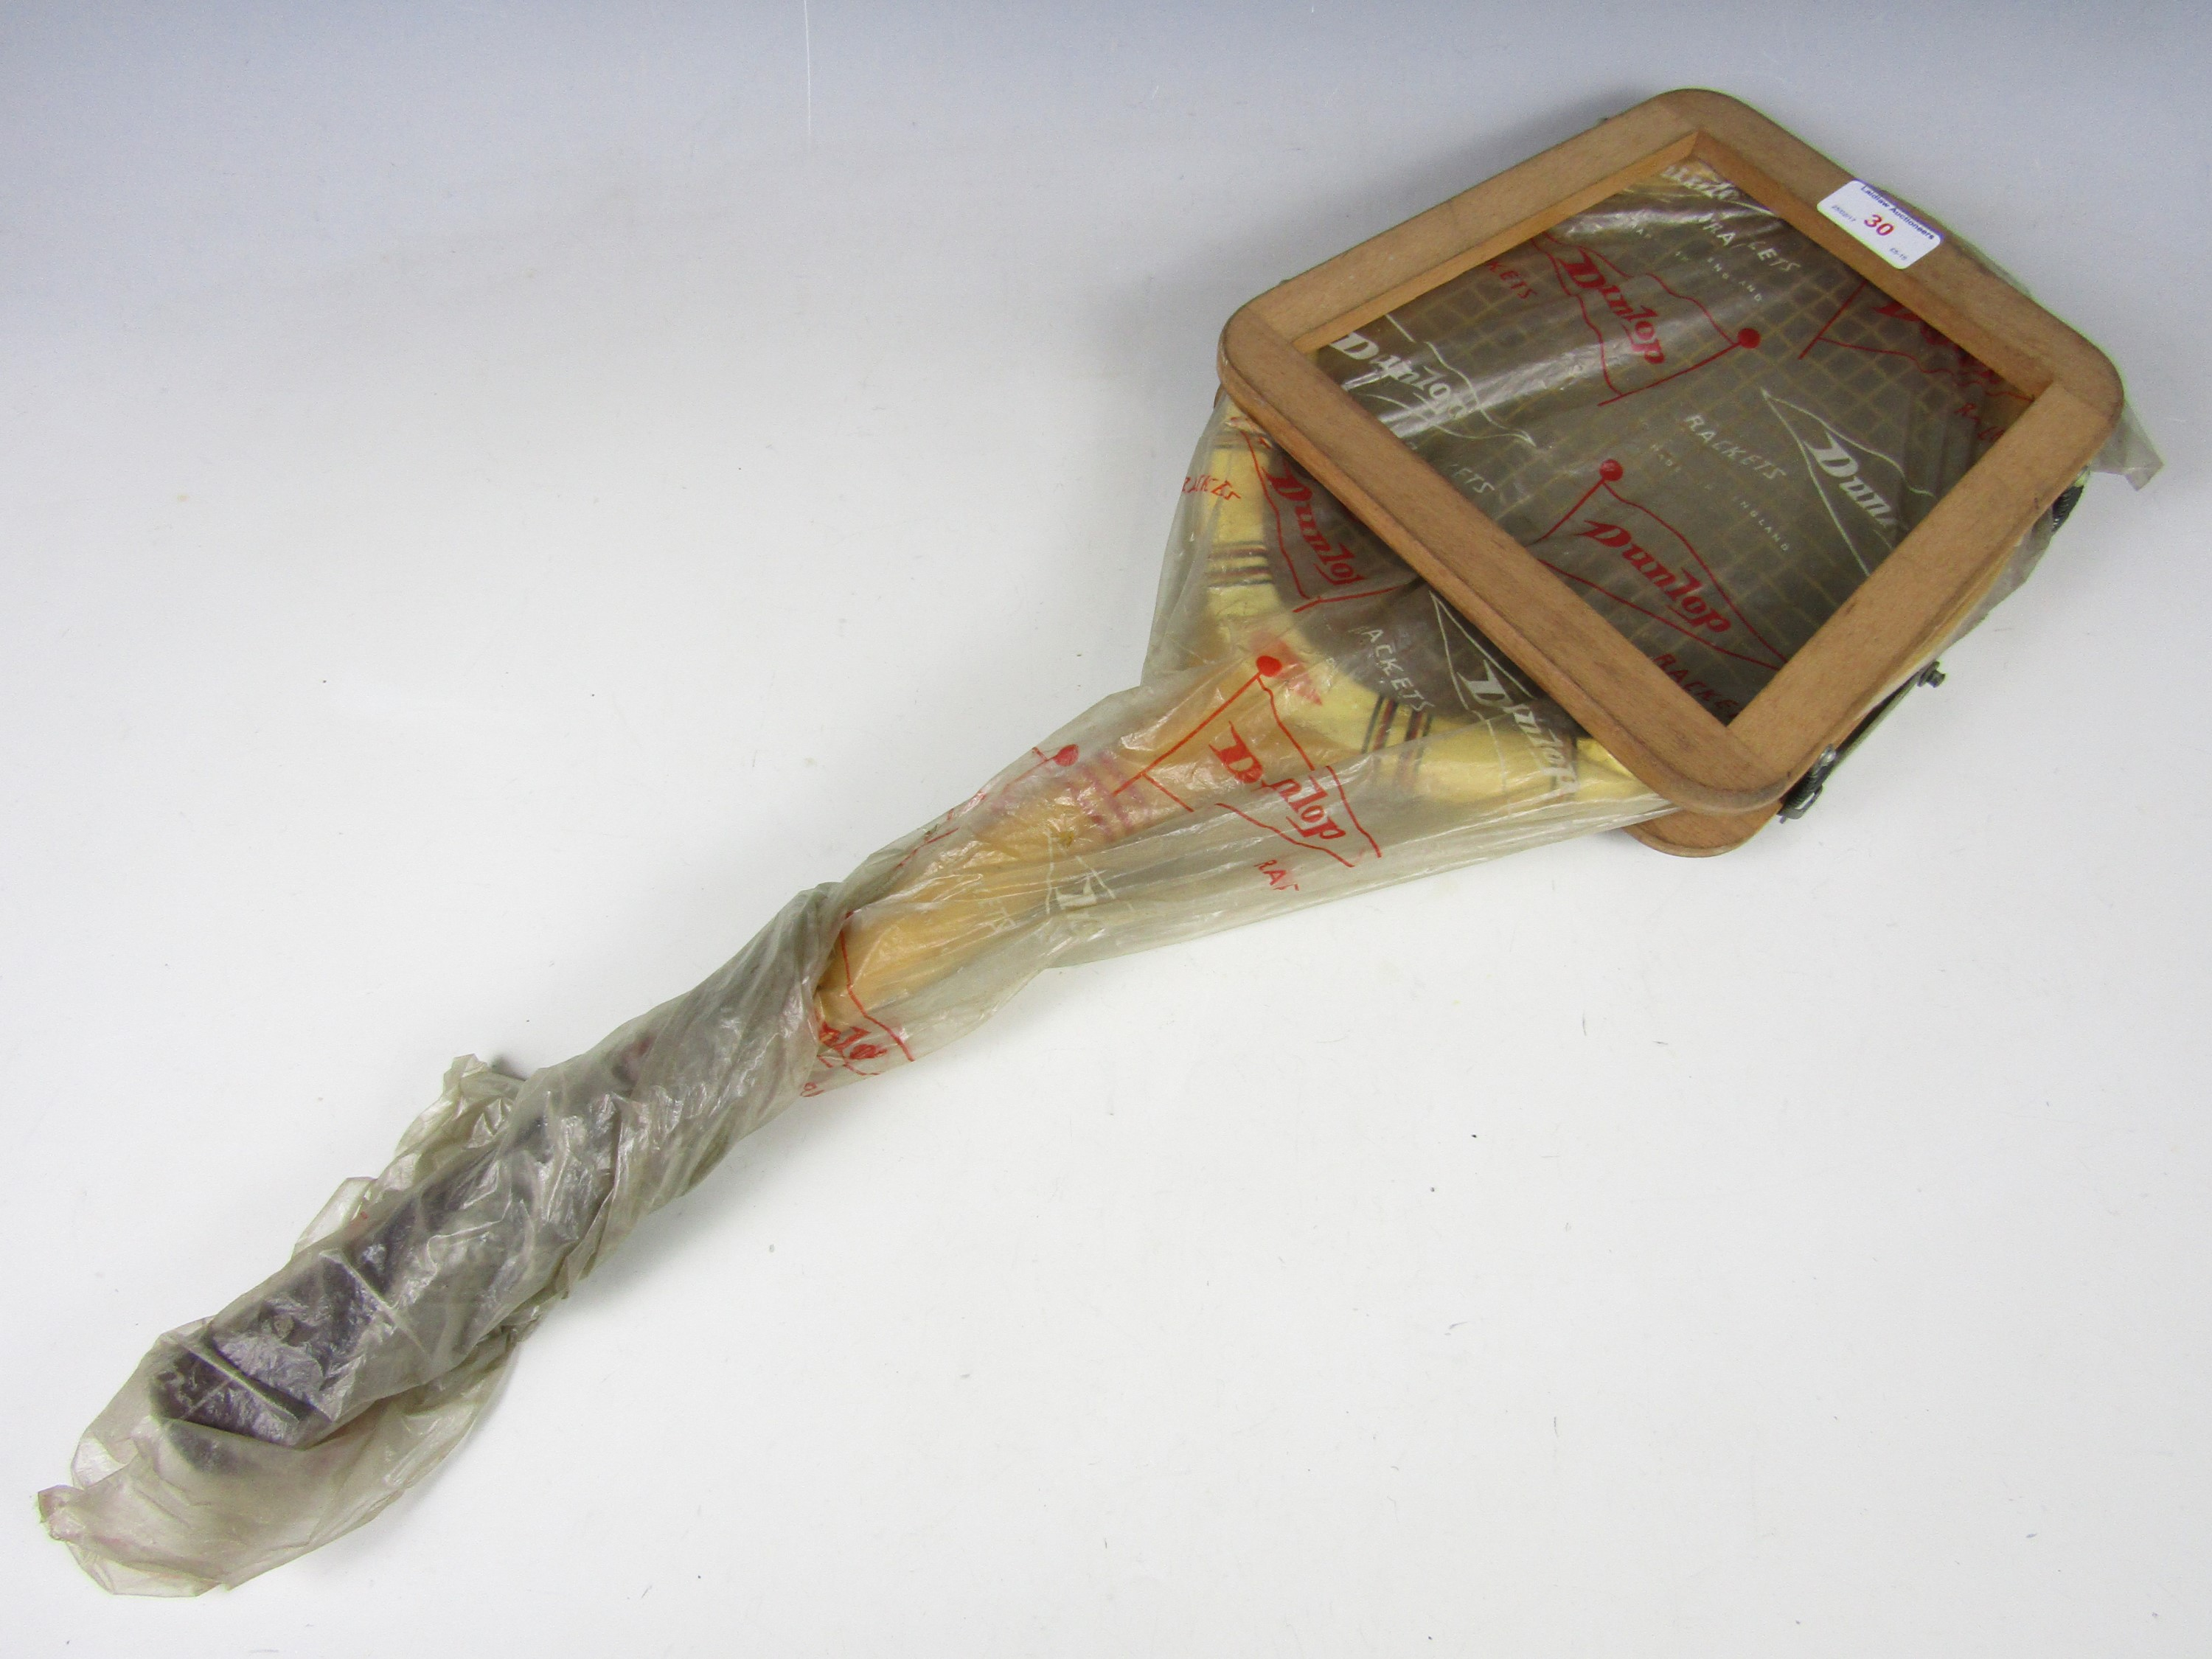 Lot 30 - A 1950's Dunlop Maxply tennis racket with original keeper and packaging